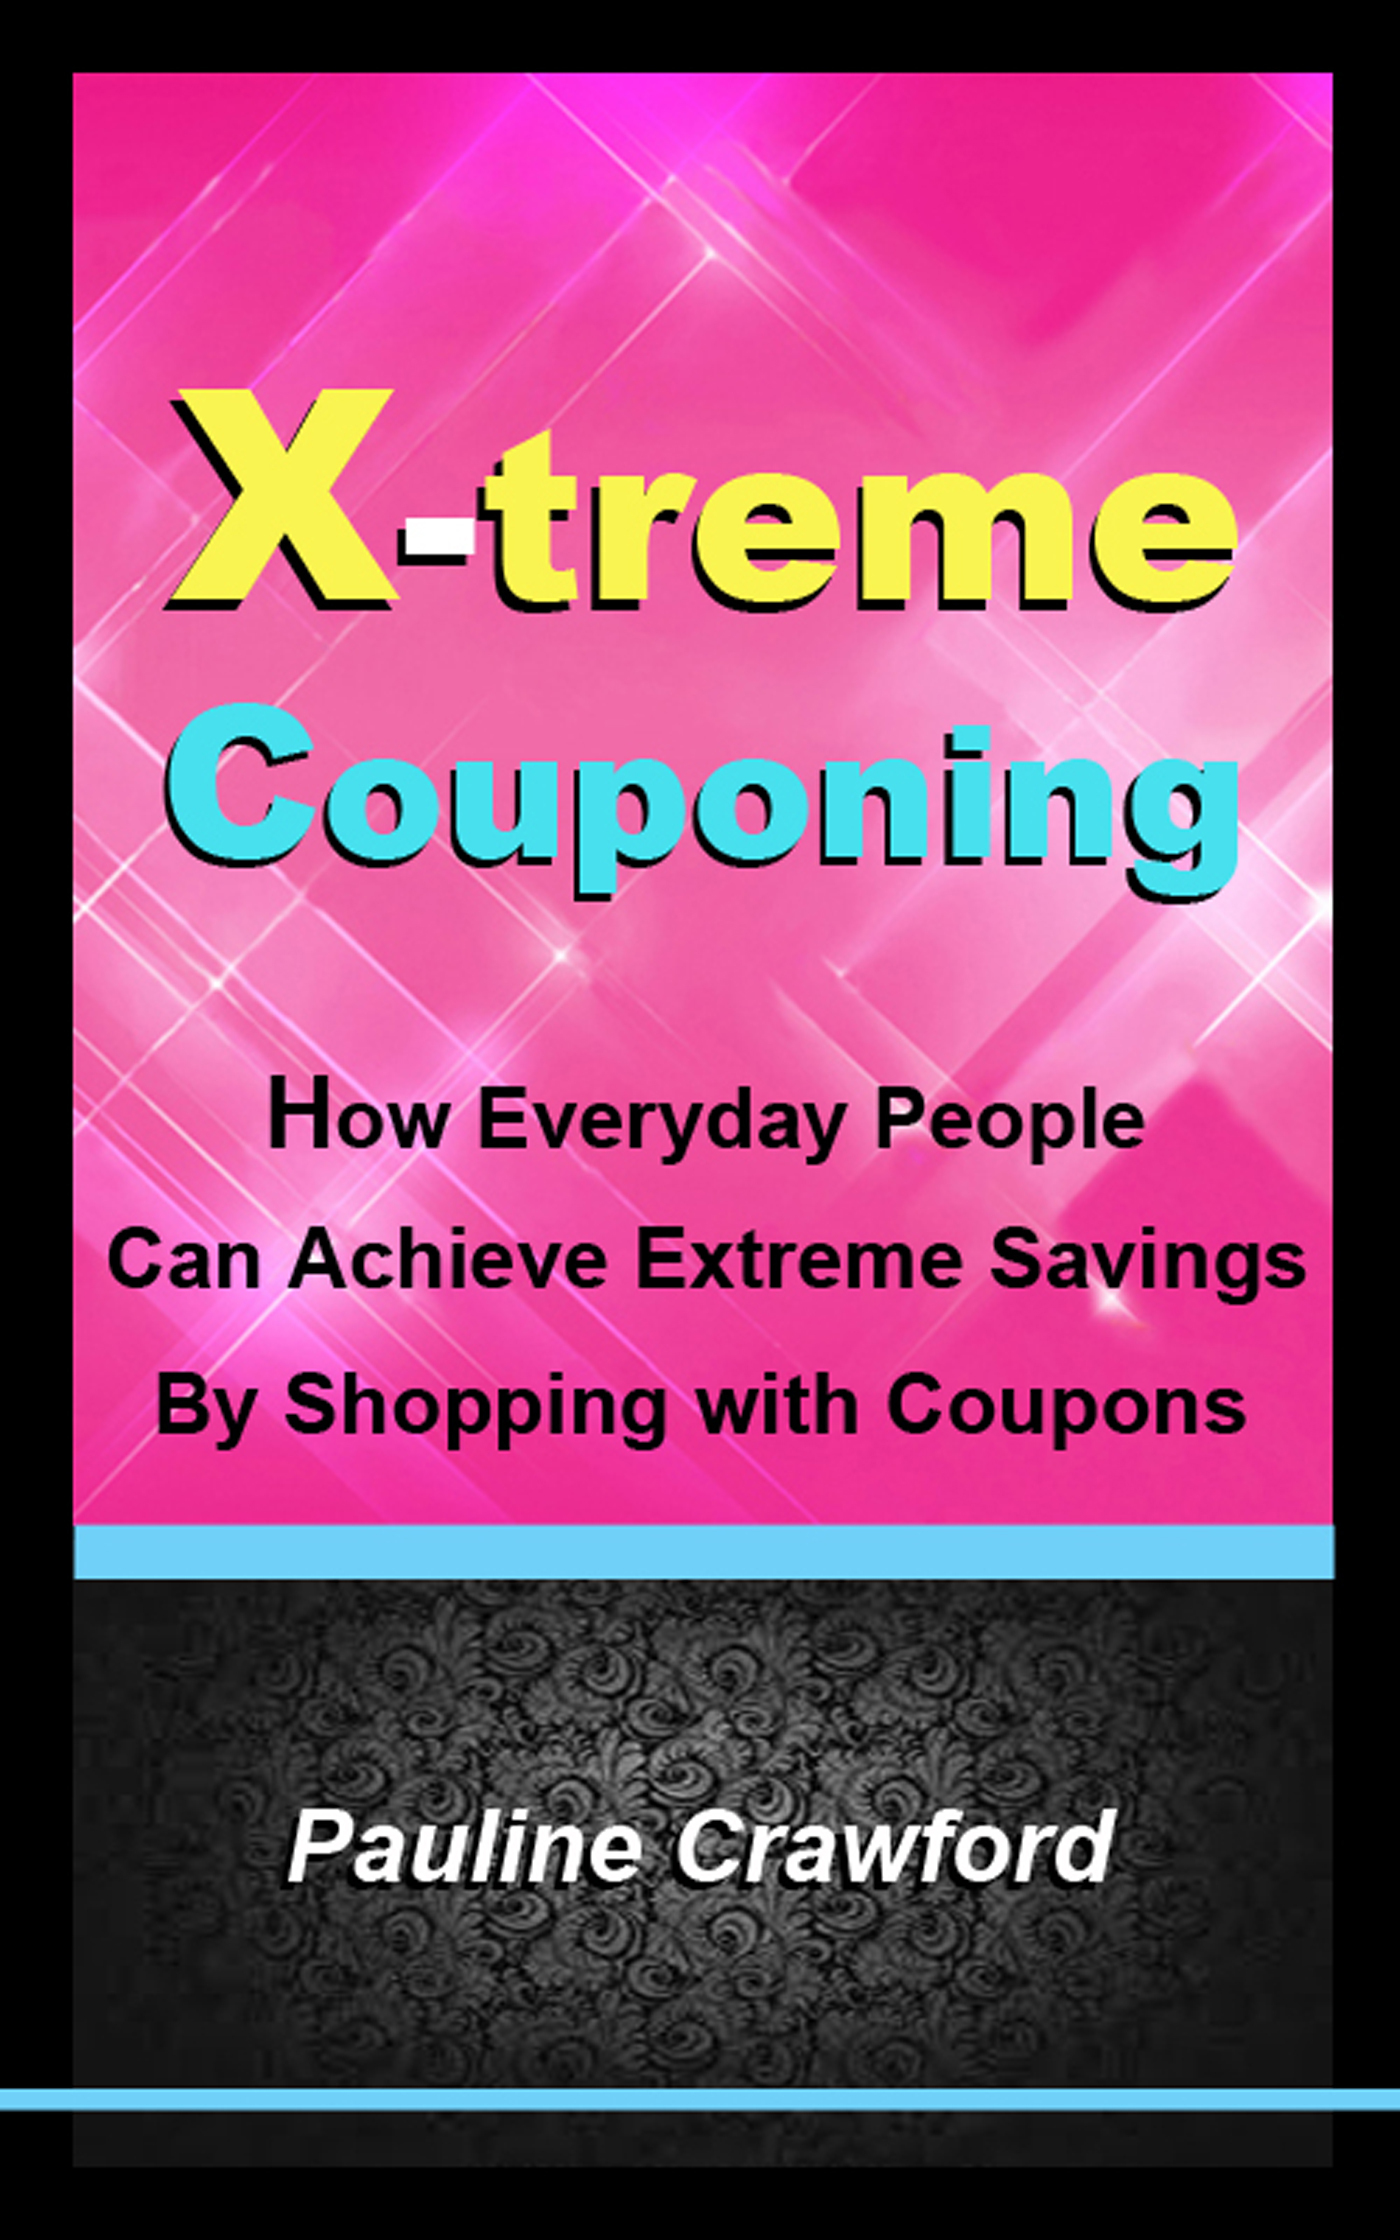 X-treme Couponing: How Everyday People Can Achieve Extreme Savings by Shopping with Coupons